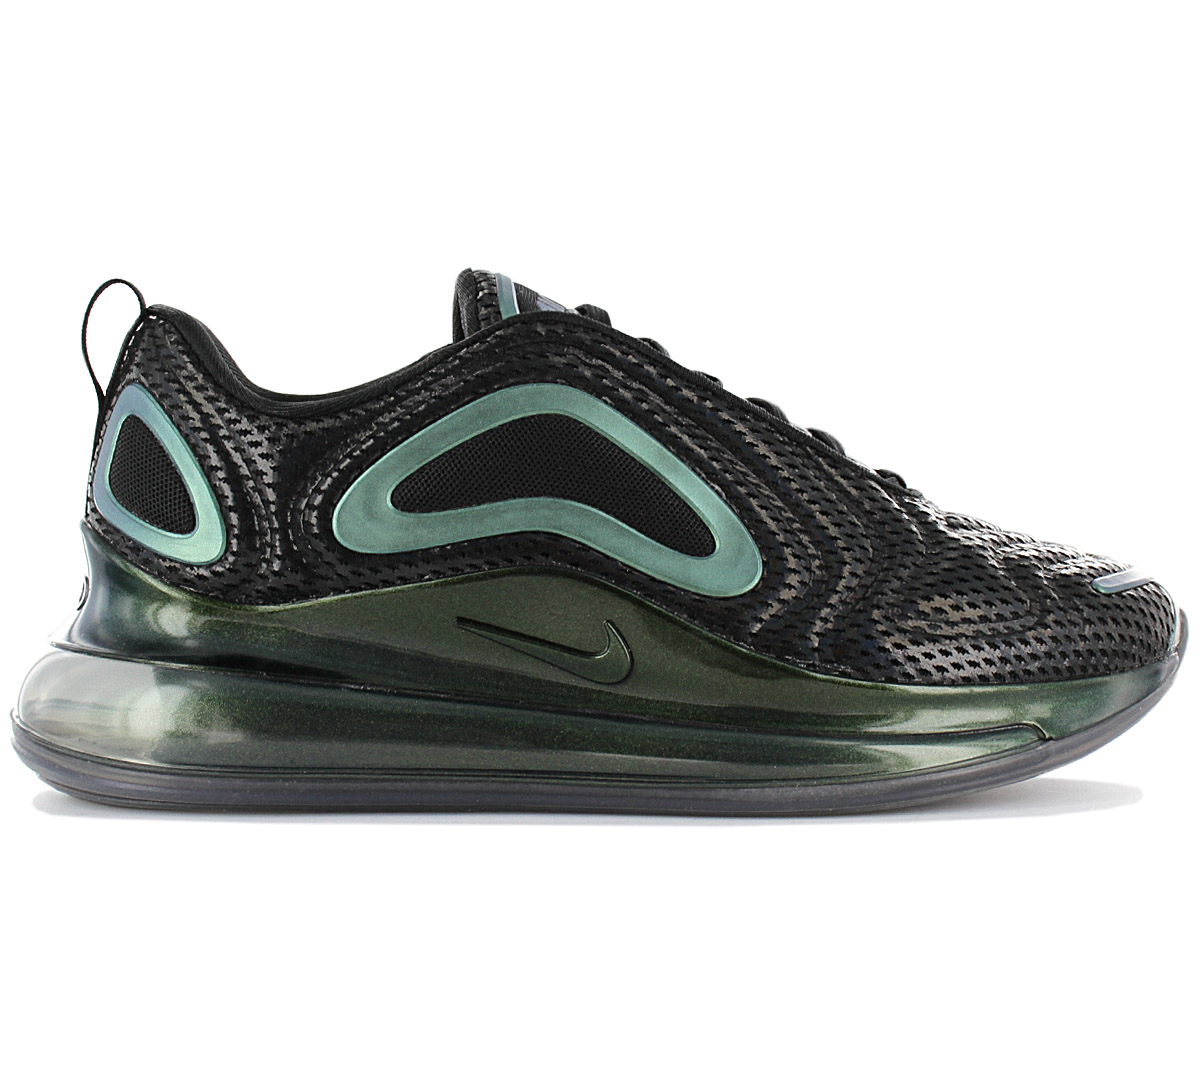 Details about Nike Air Max 720 Throwback Future Iridescent AO2924 003 Men's Sneaker Shoe